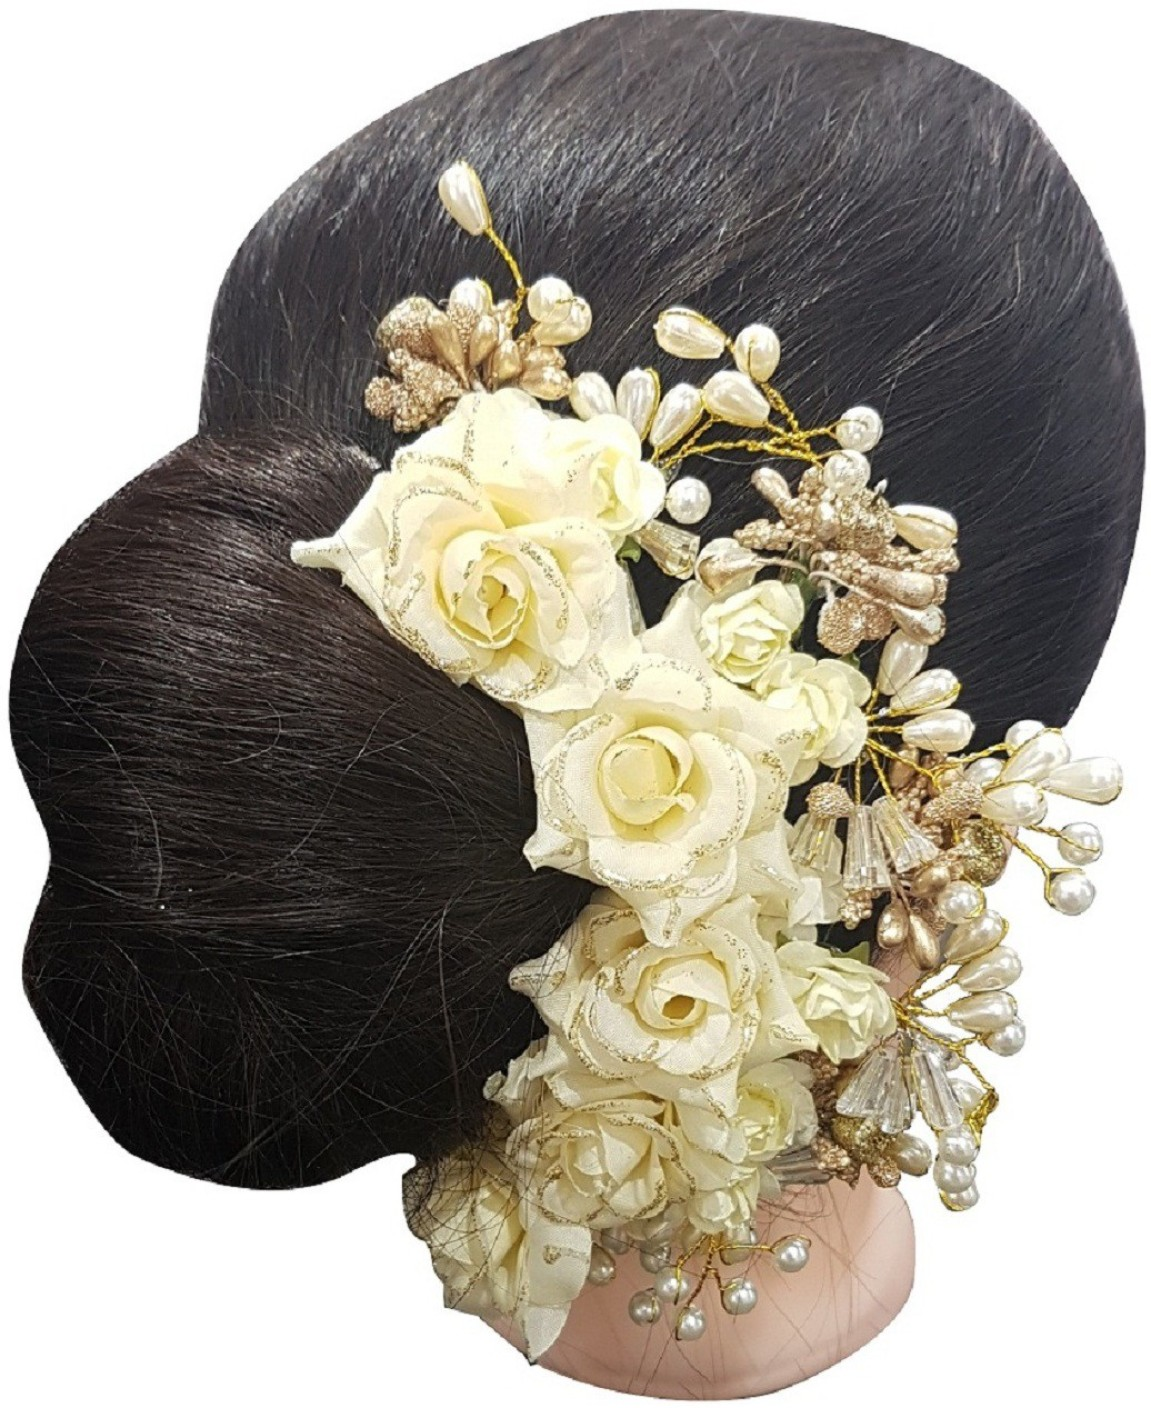 Simple Juda Hairstyle For Wedding: Majik Party Wear Accessories Artificial Flowers For Juda